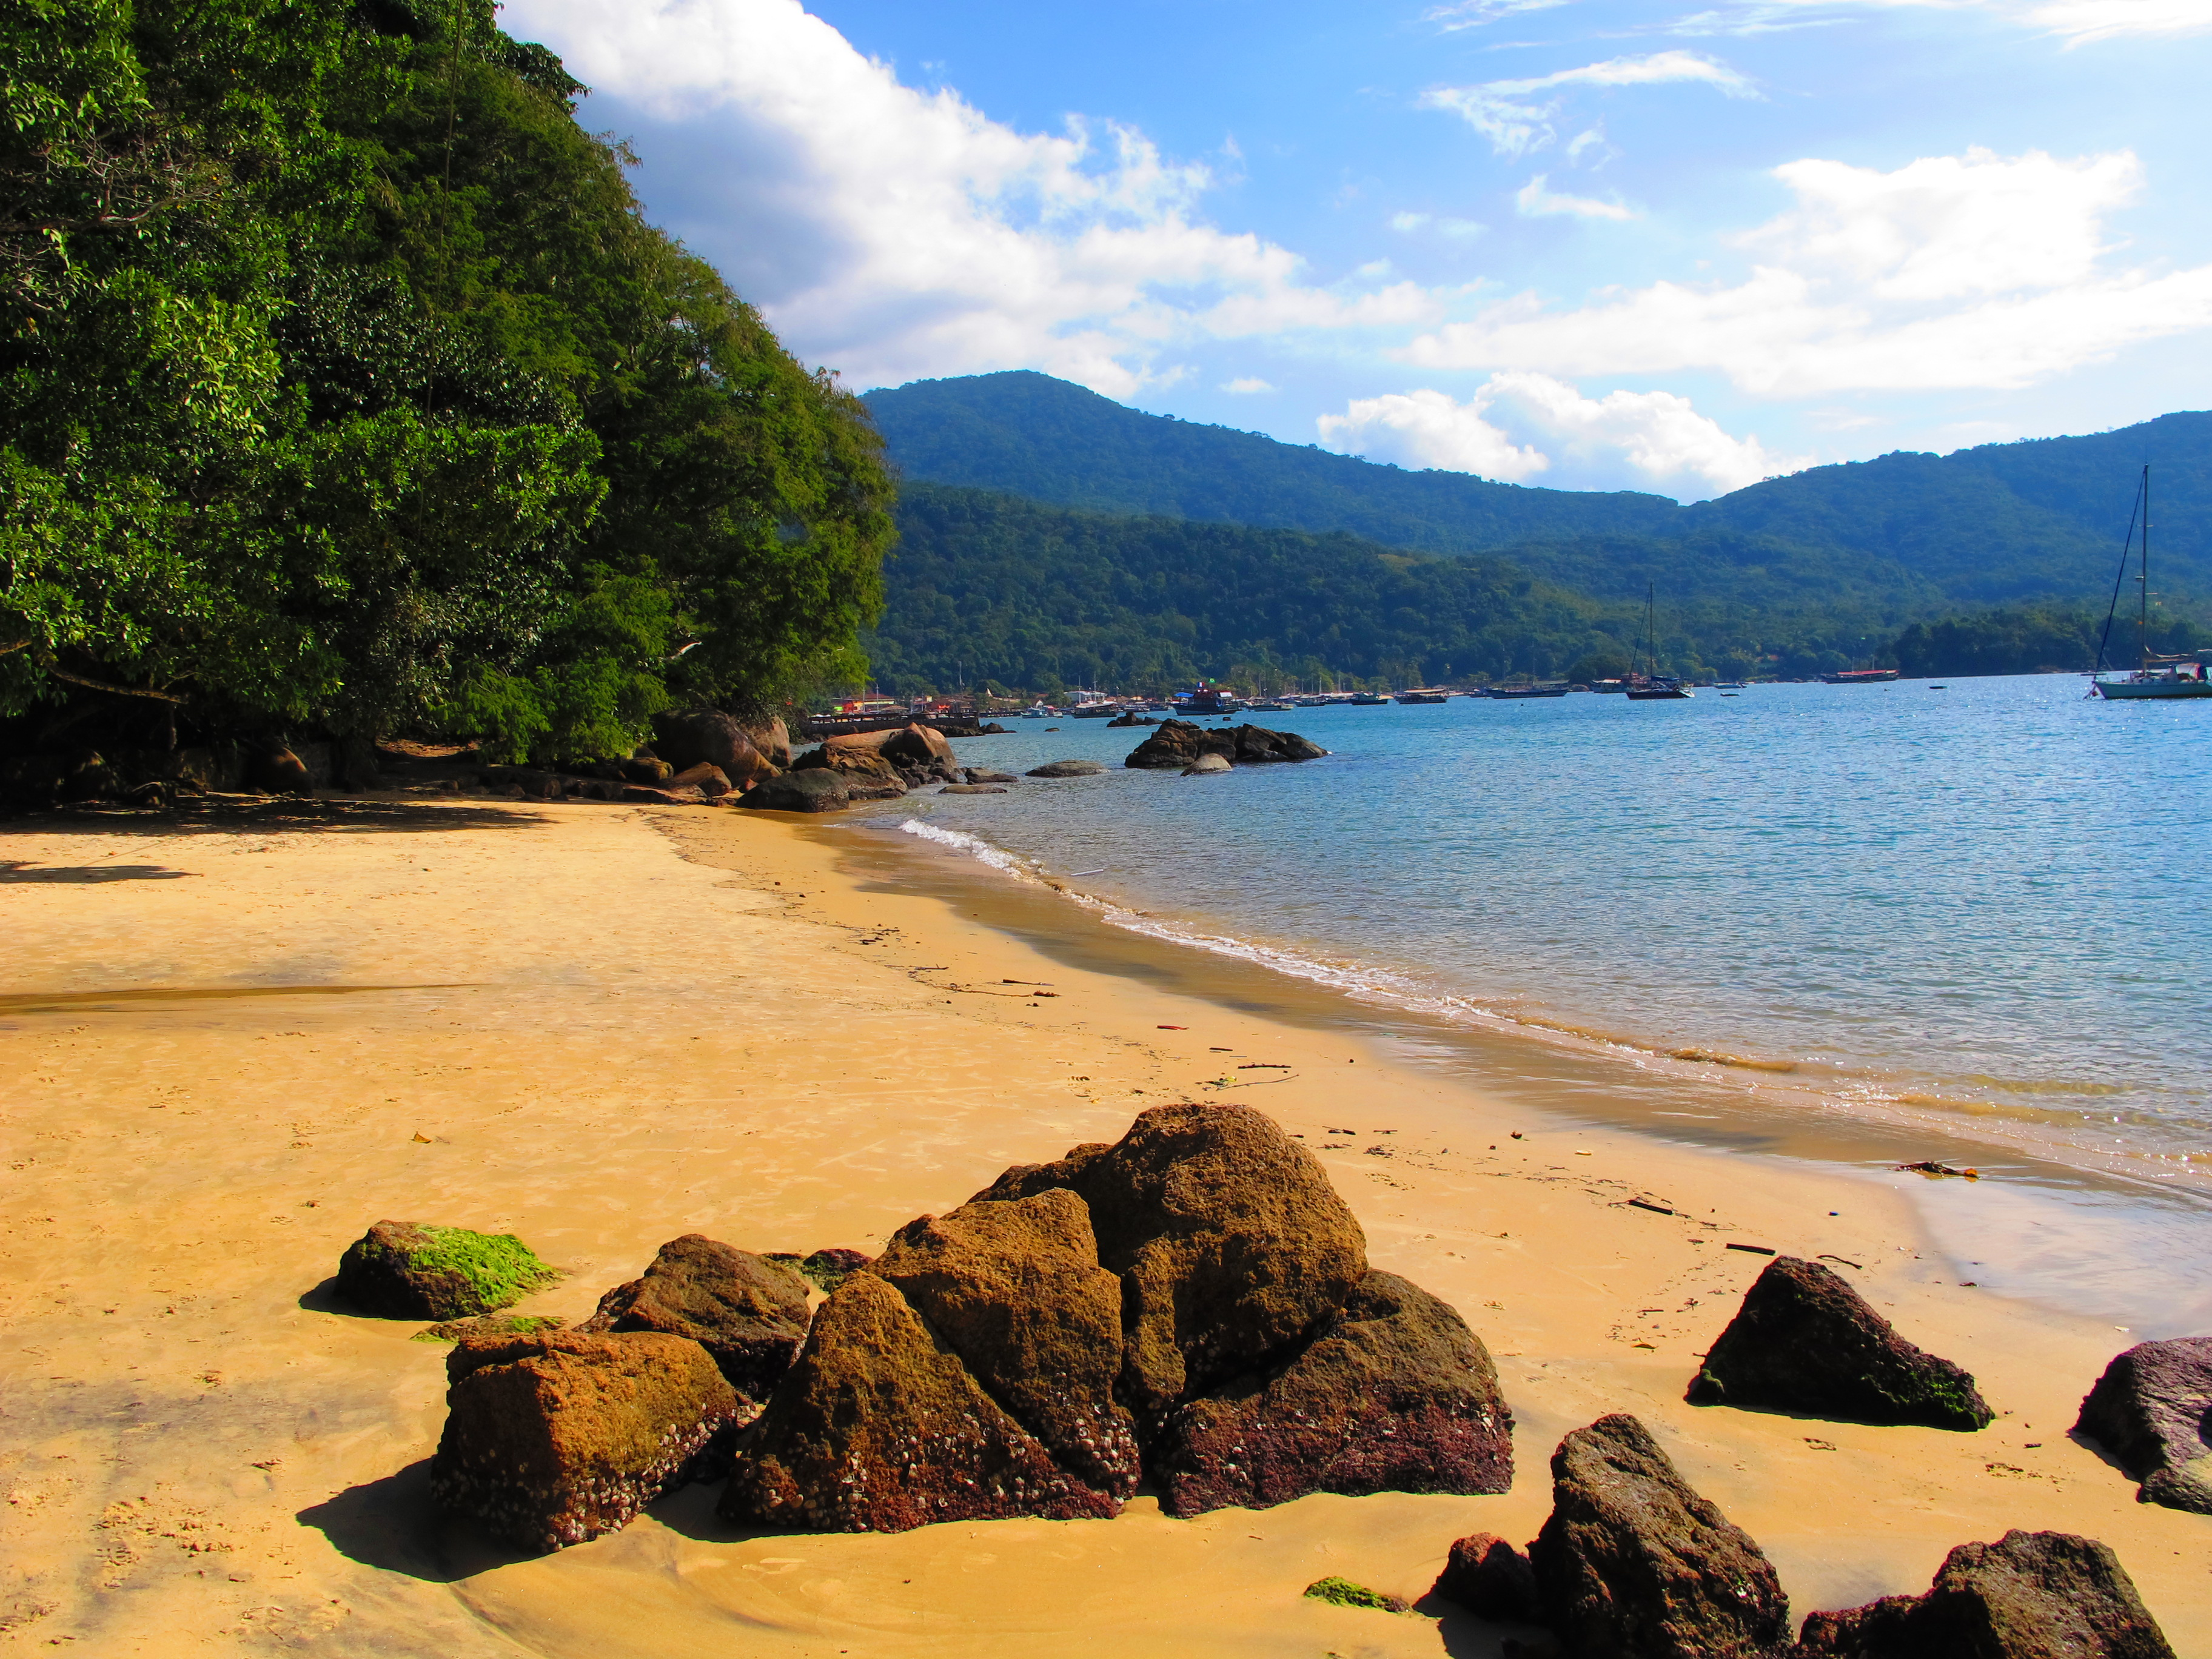 Hiking trails in Ilha grande